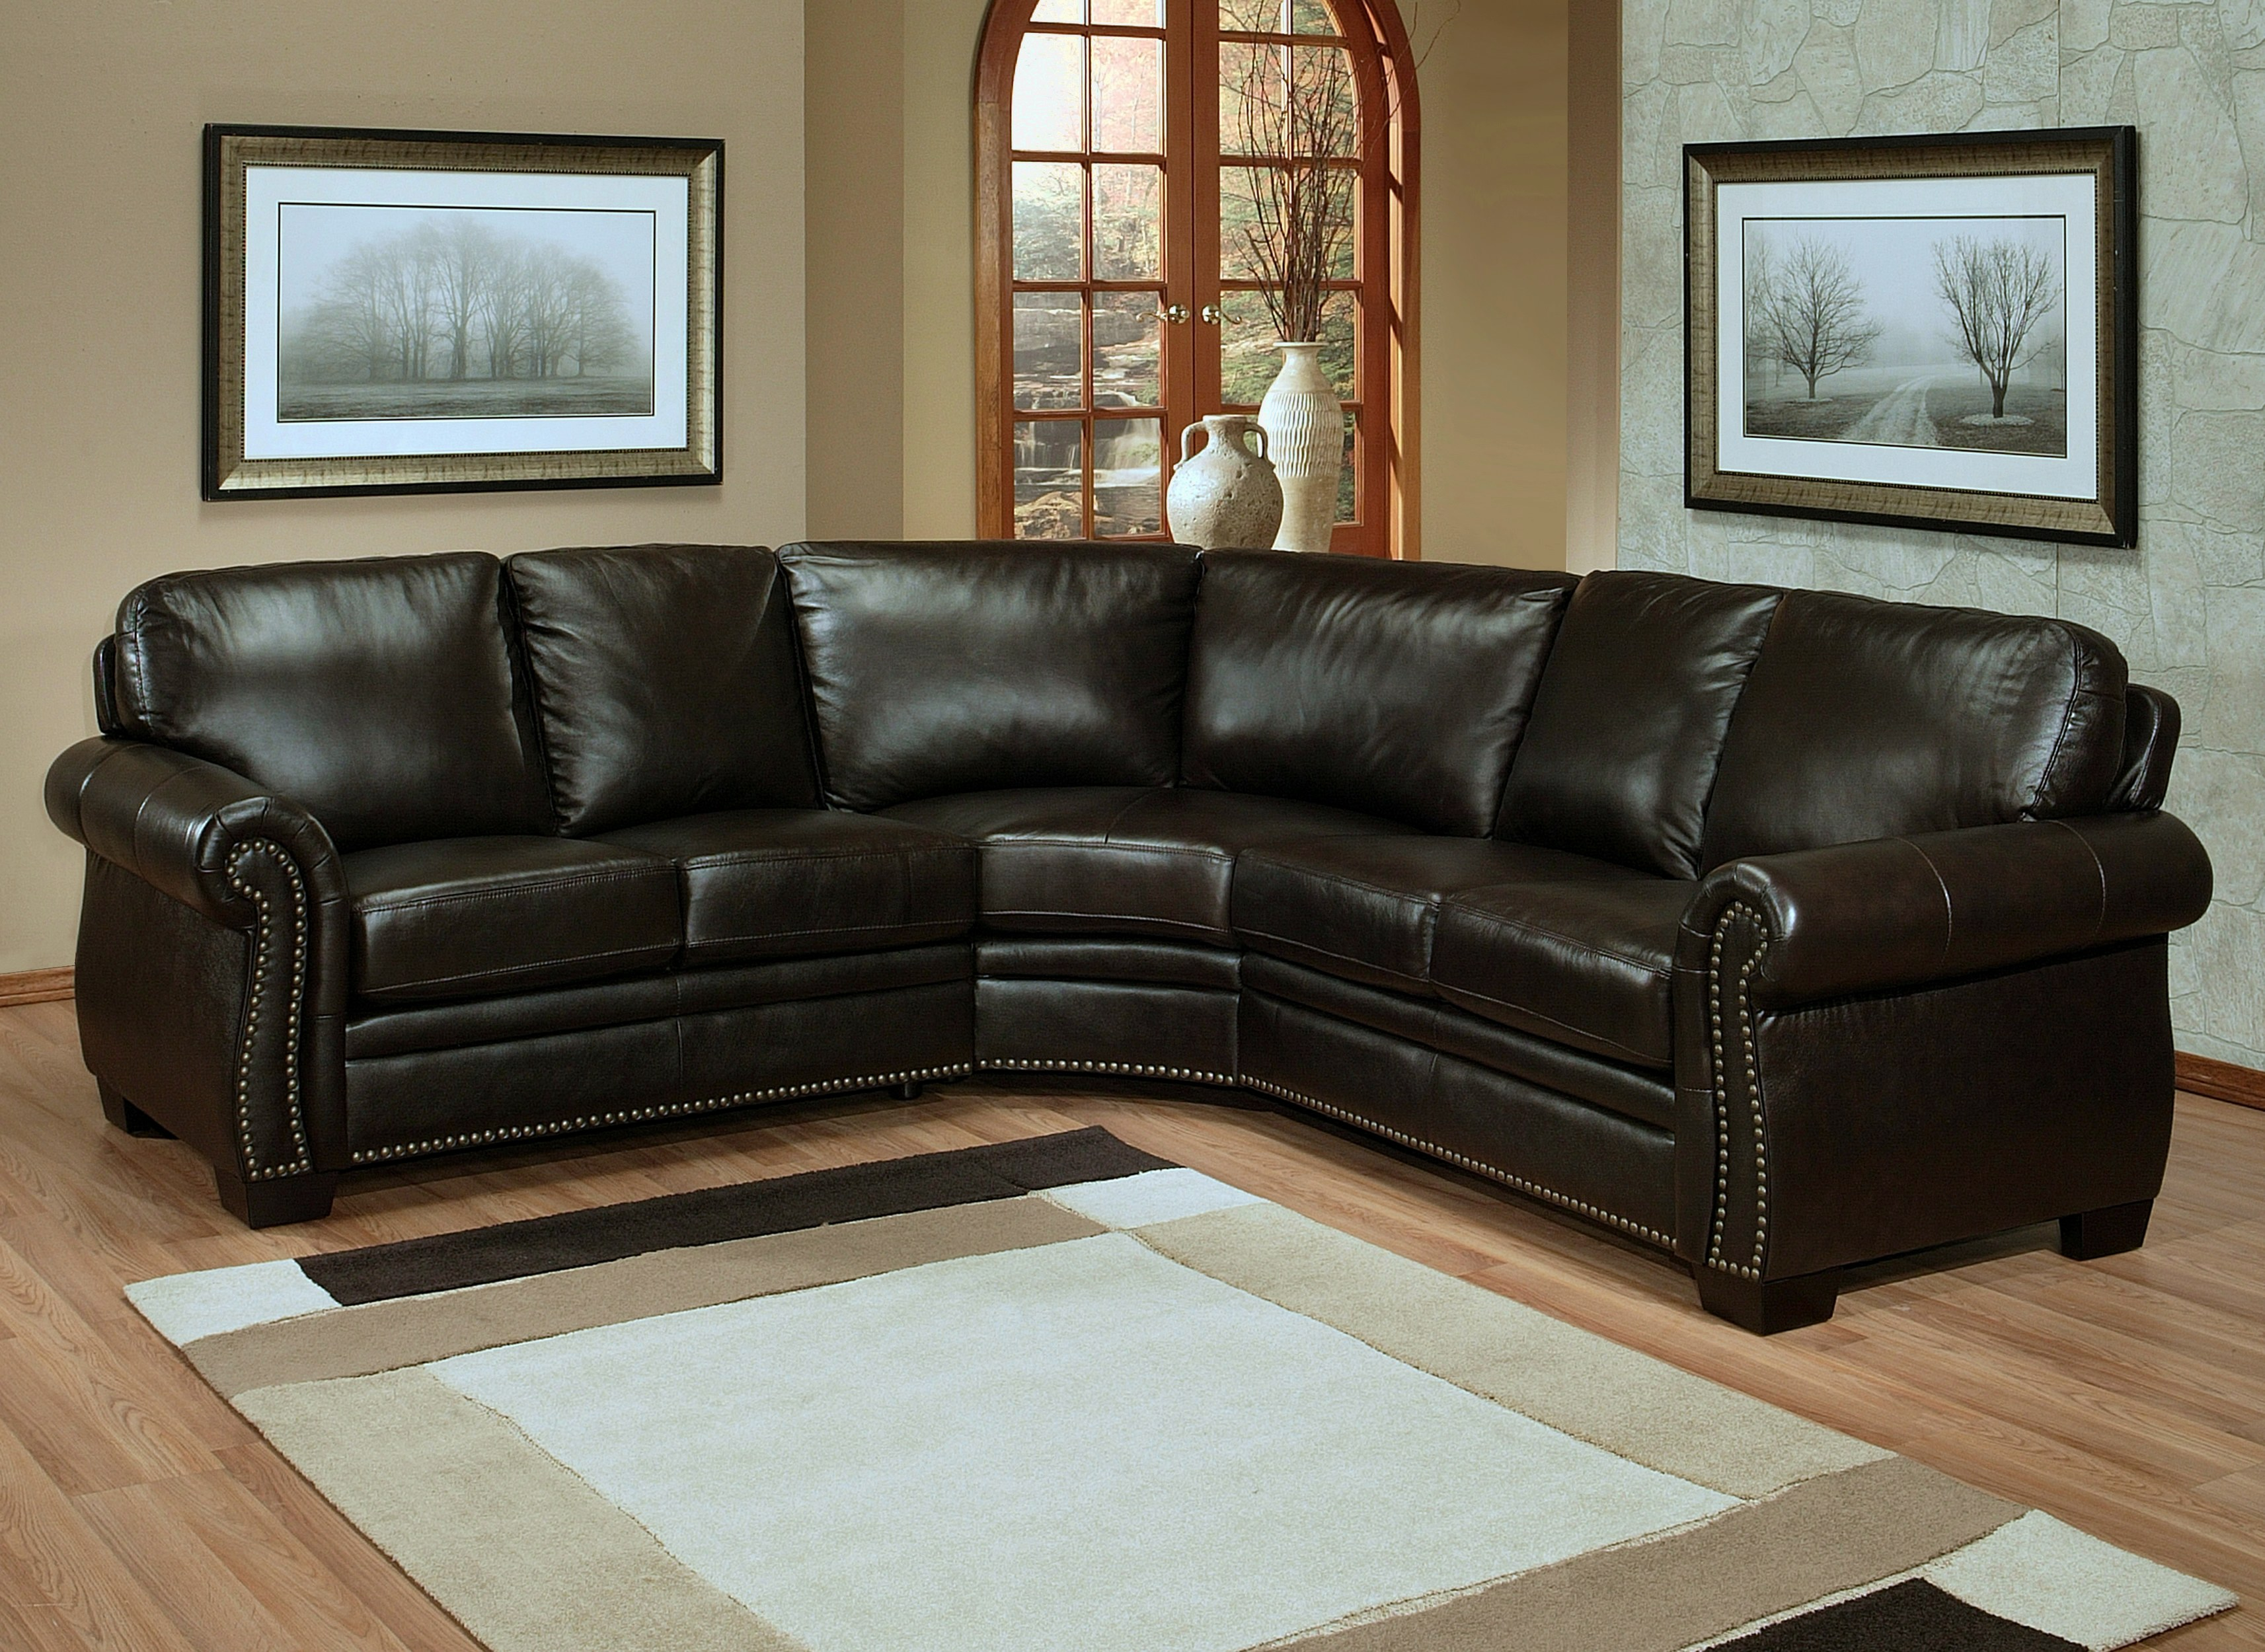 Oxford Leather Sectional Sofa By Abbyson Living CI N410 BRN